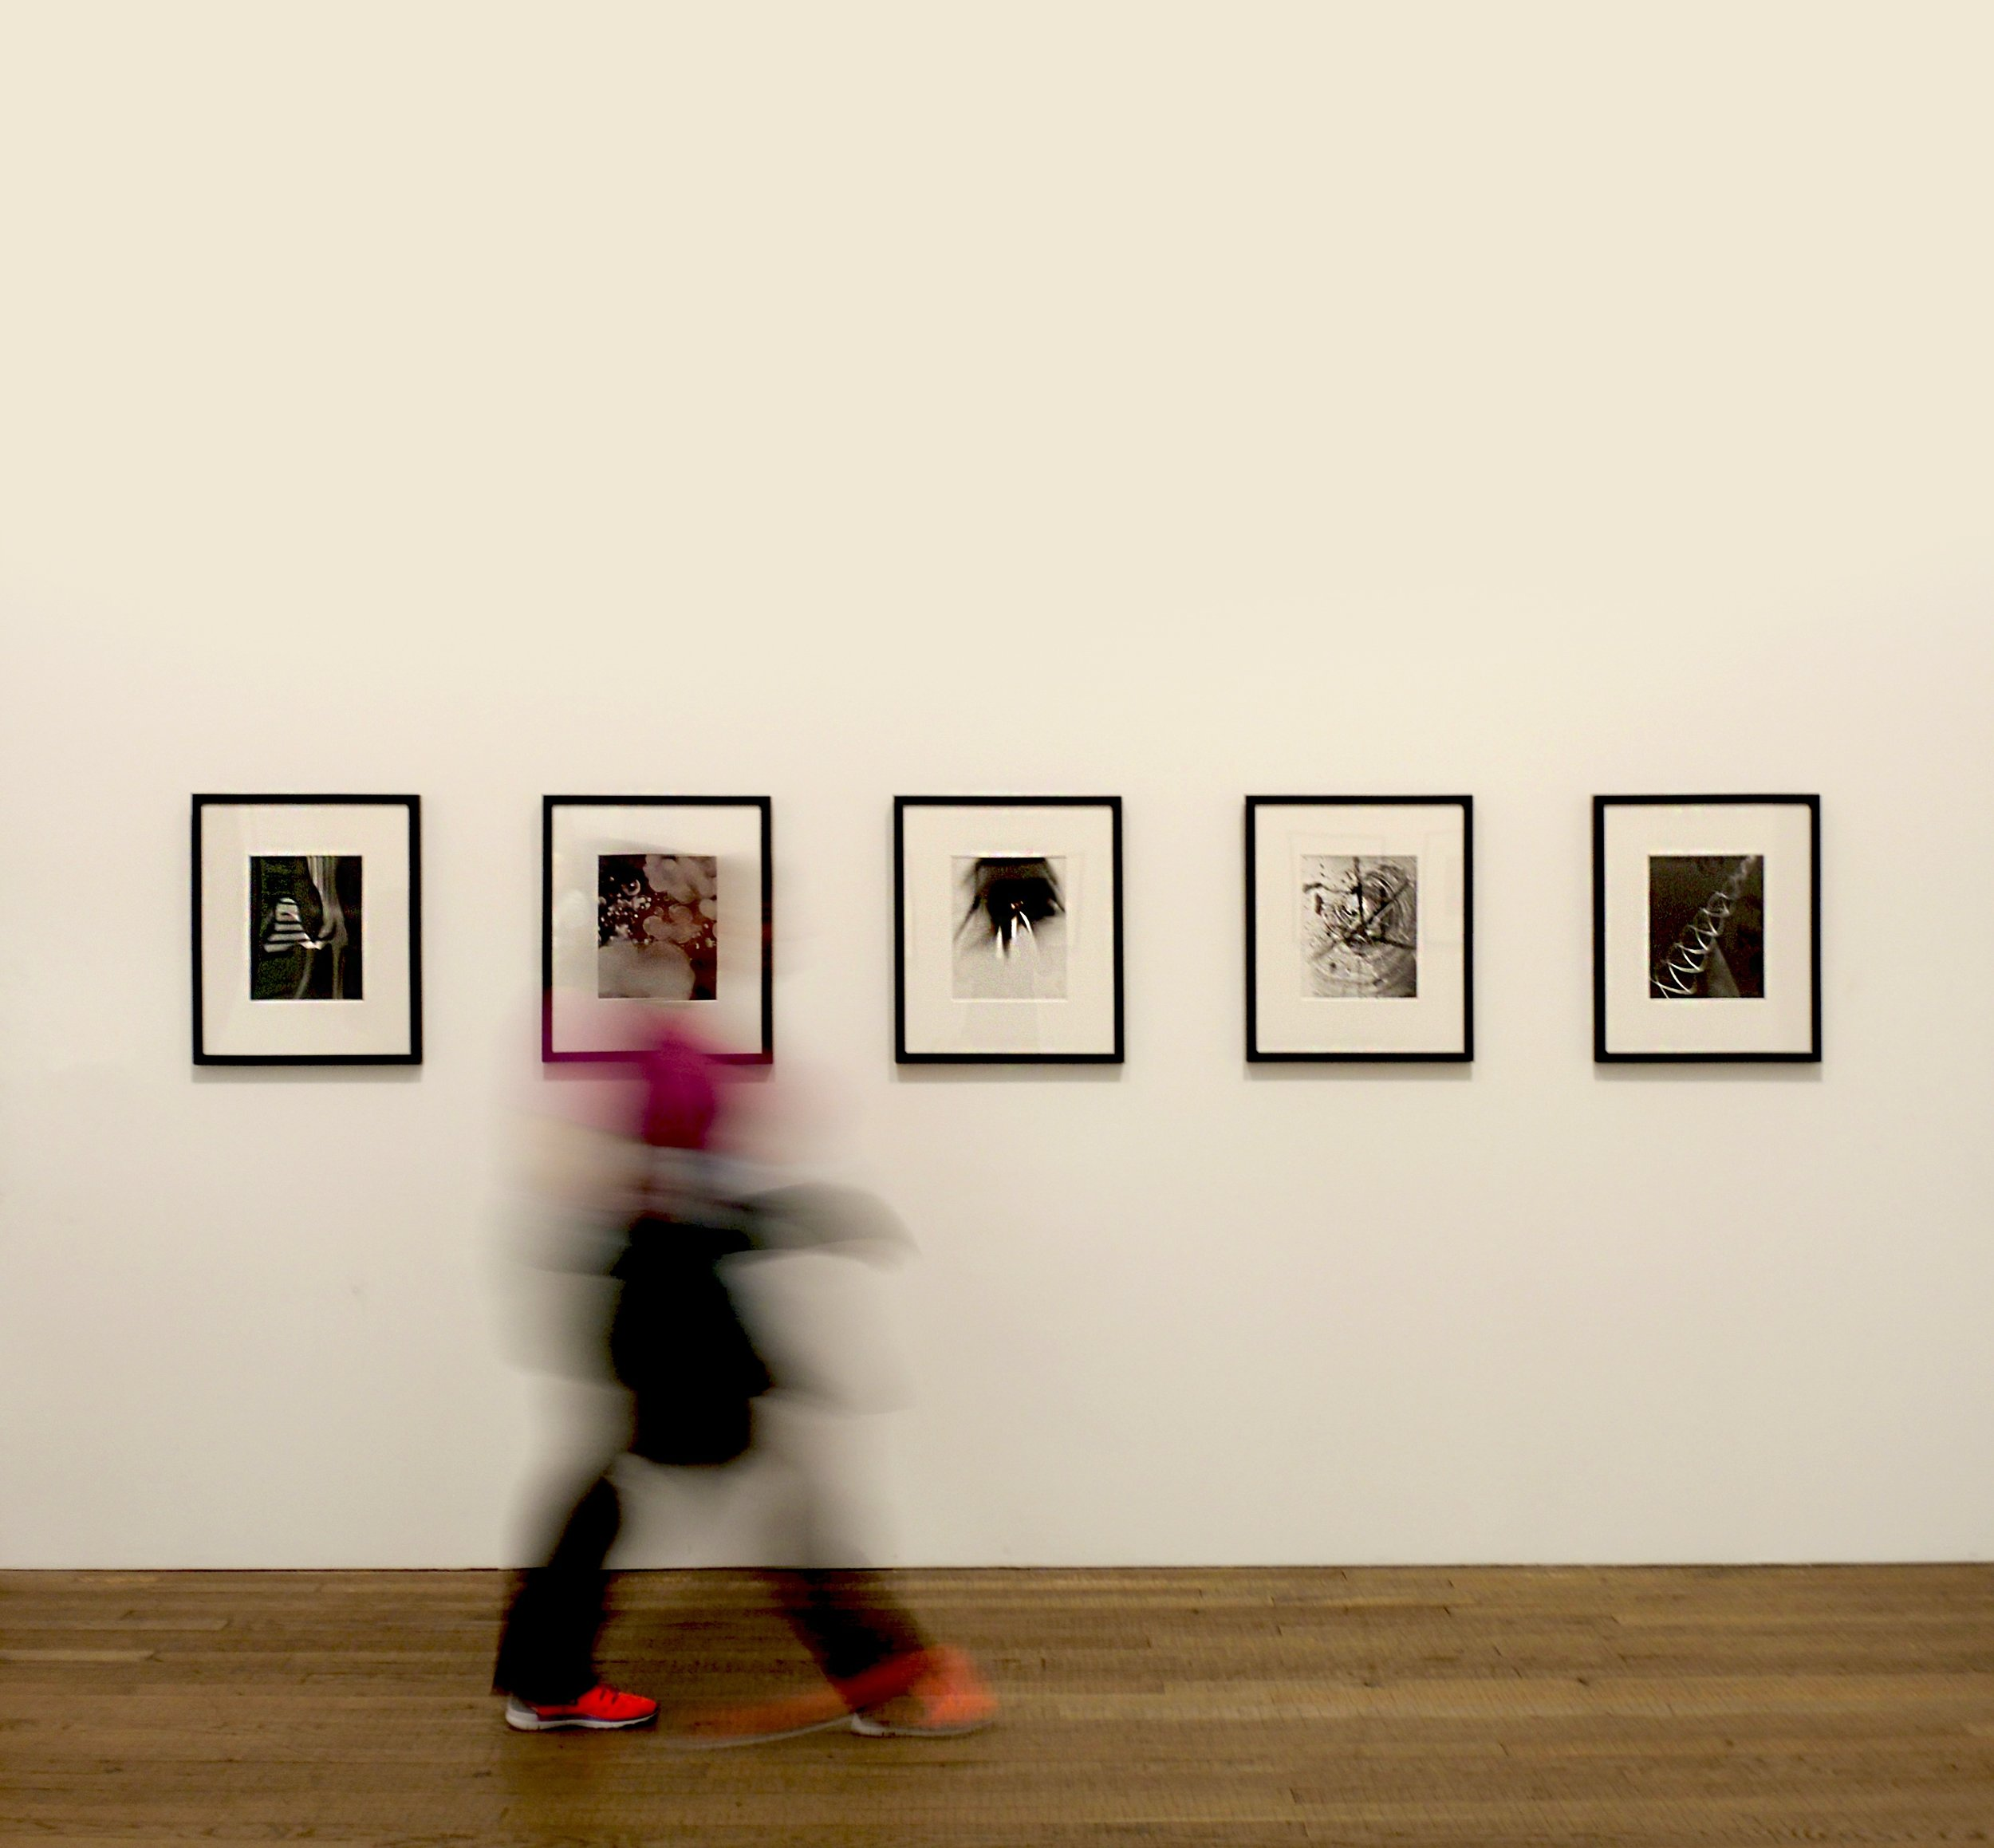 art gallery_blurred man passing.jpg